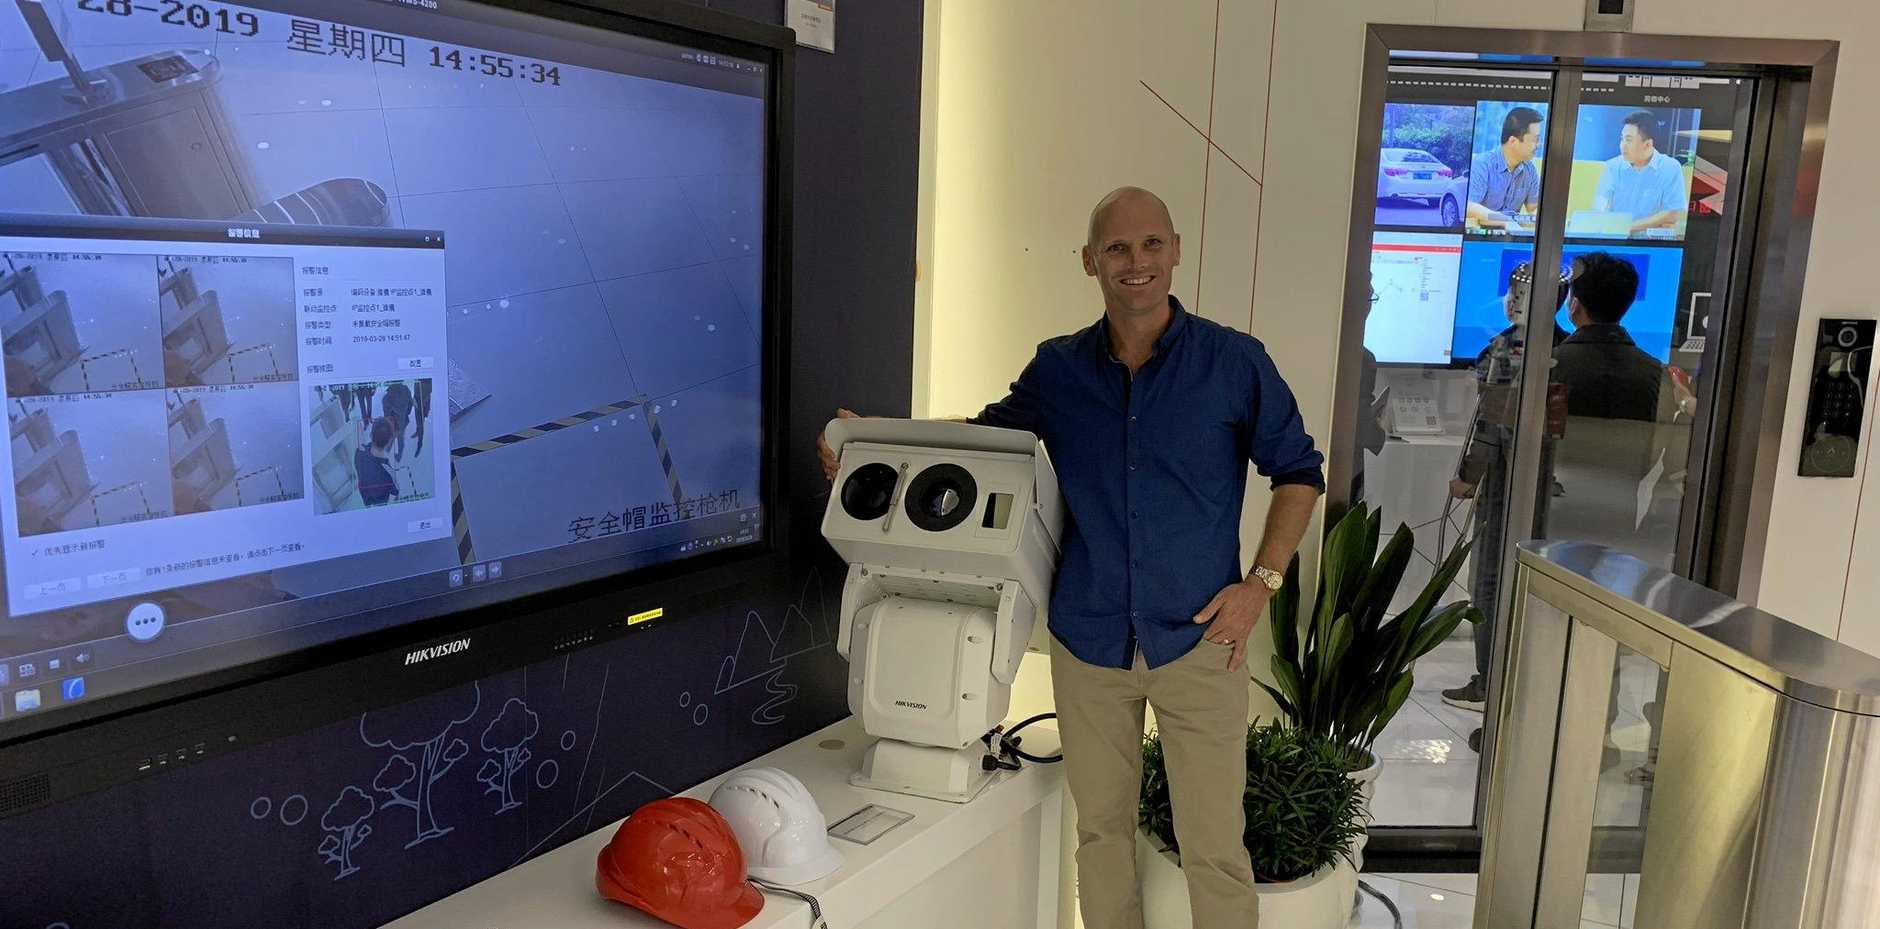 TECH HEAVEN: Secure Solutions CEO Peter Siokos visits HIKvision in Hangzhou.